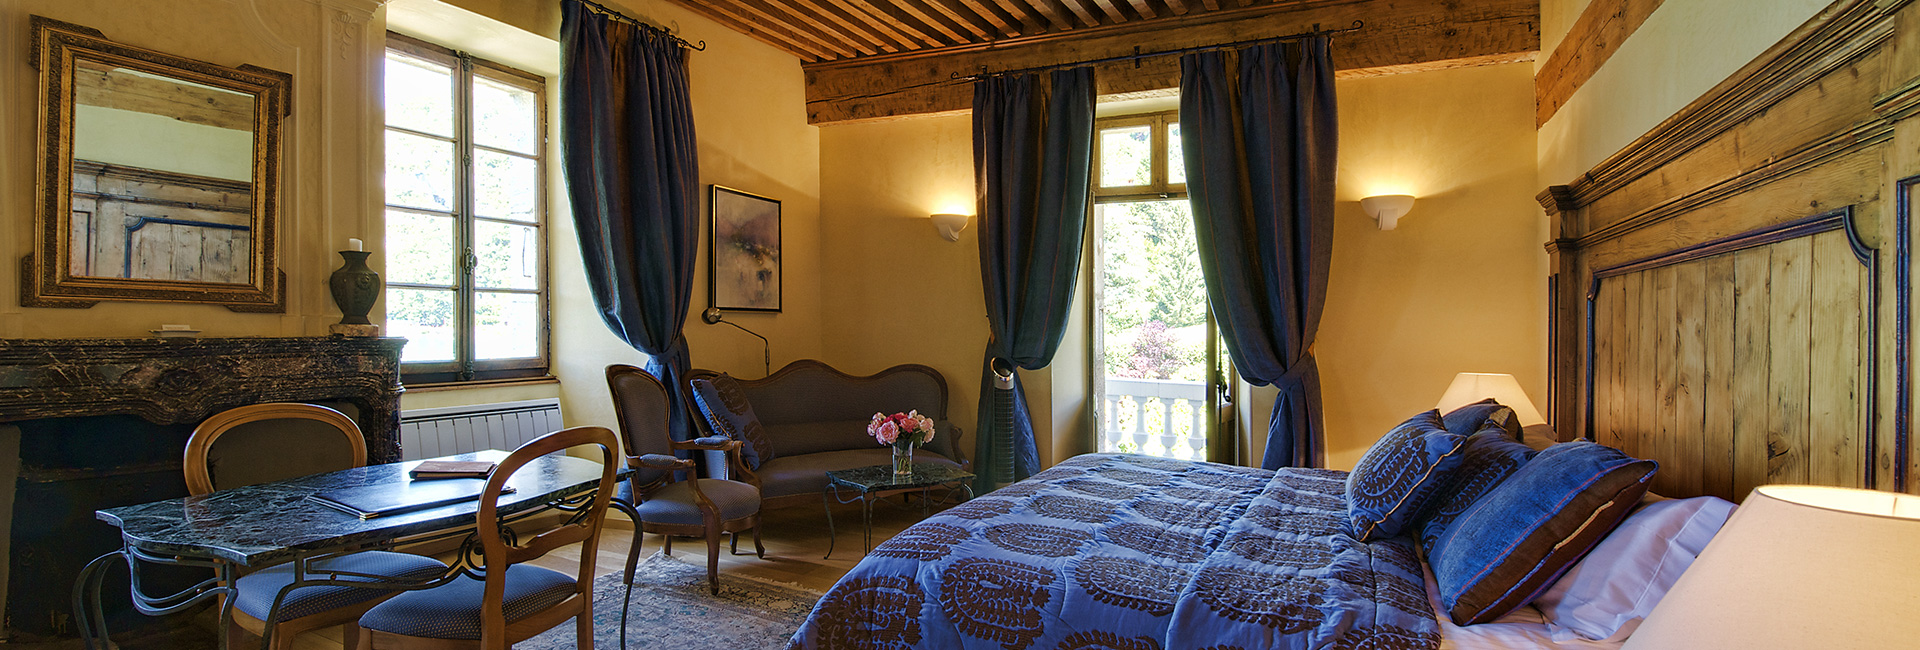 Chambre Dhotel De Luxe Chambres Hotel Annecy Suite Hotel Luxe Annecy Hotel Vue Lac